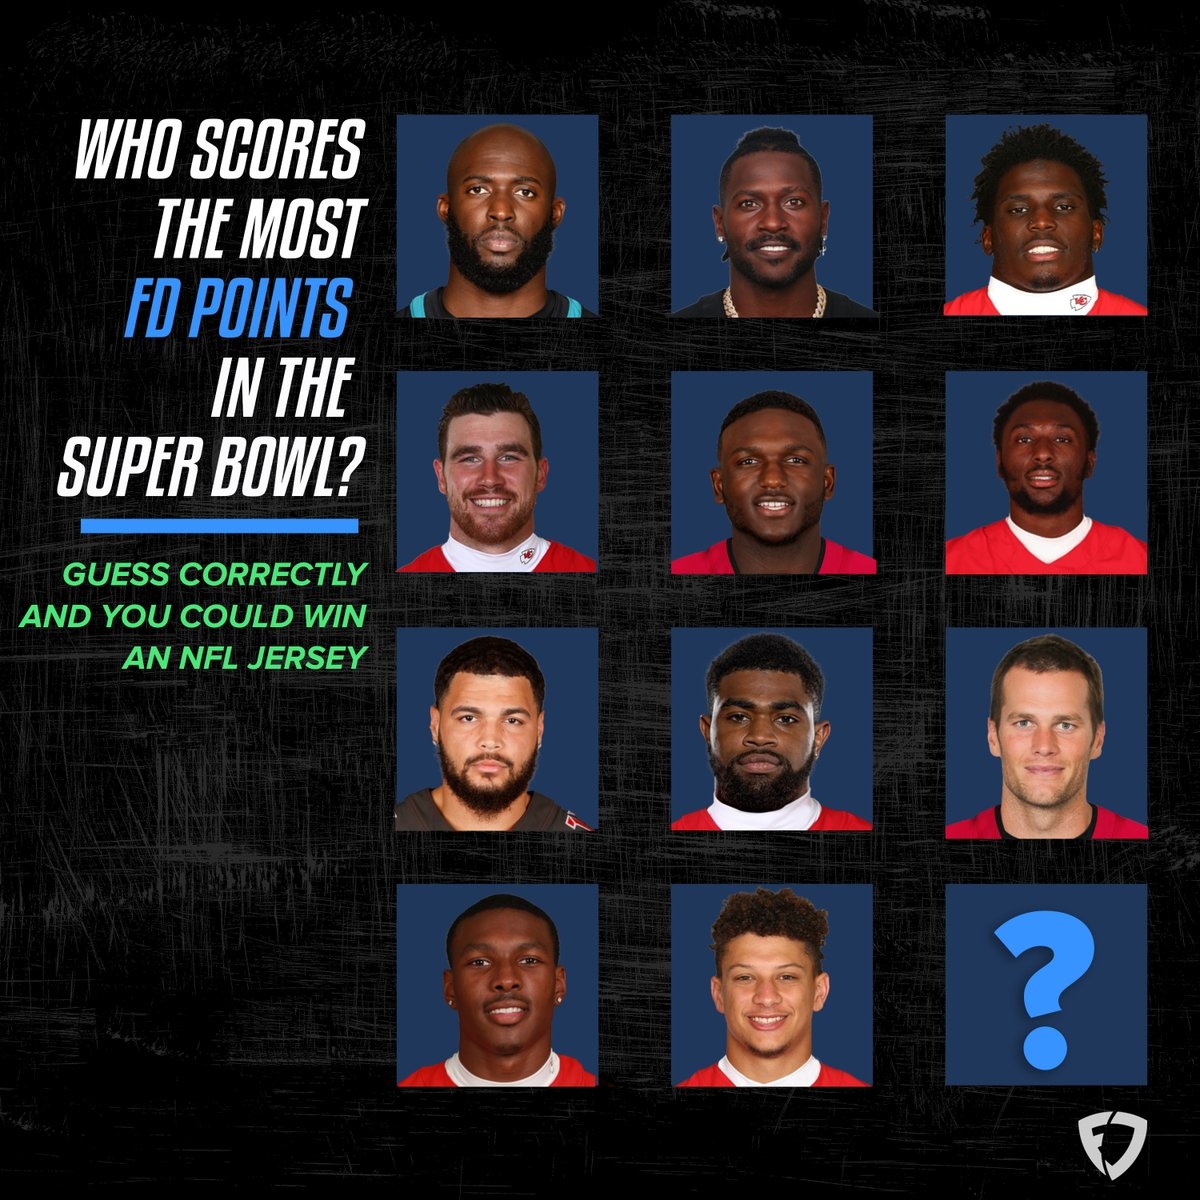 🚨 GIVEAWAY ALERT 🚨   Want to win an NFL jersey of your choice? To enter the sweepstakes:  1️⃣ FOLLOW us: @fanduel 2️⃣ REPLY your guess below 3️⃣ RT this post  One winner will be selected at random on 2/8.  Rules: